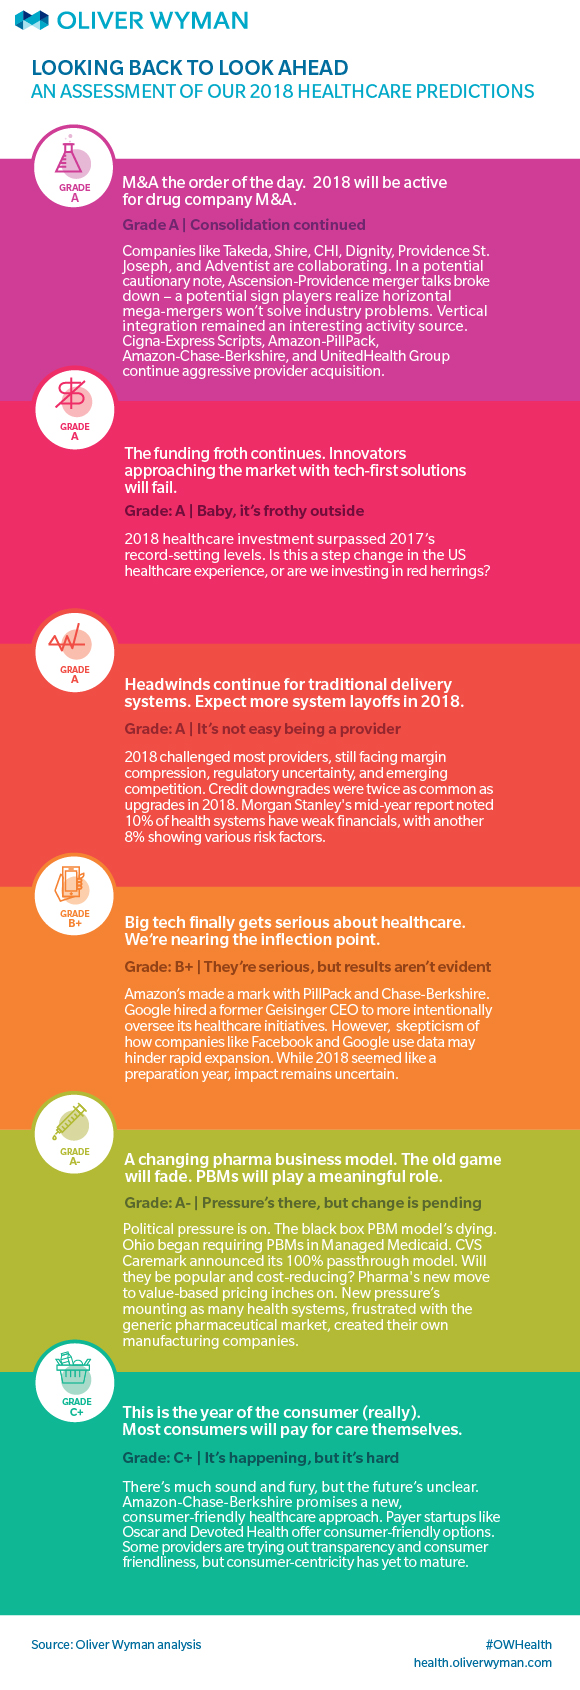 Infographic: Assessing Our 2018 Healthcare Predictions